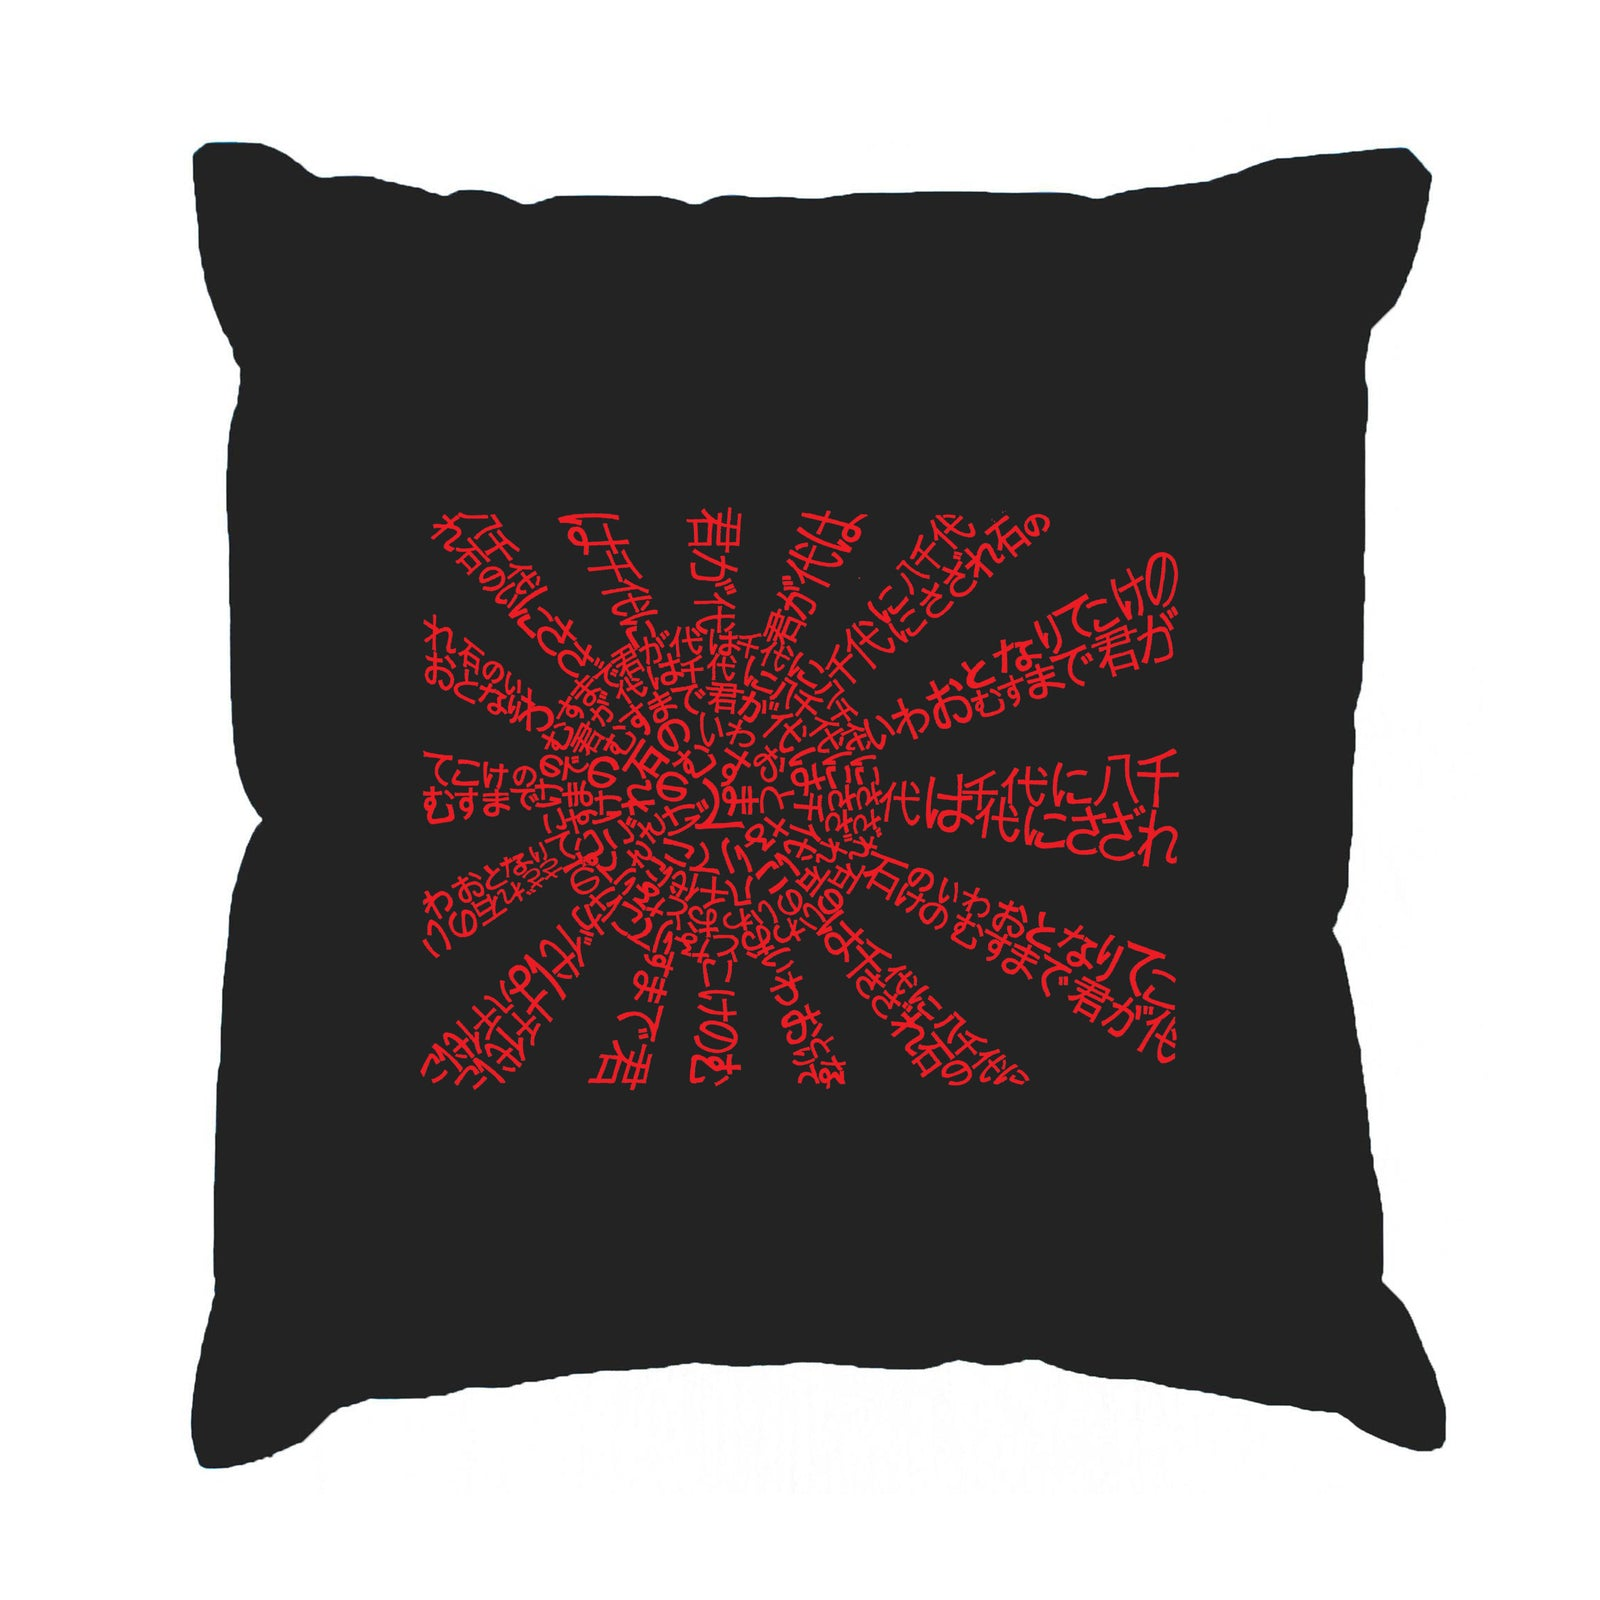 Throw Pillow Cover - Lyrics To The Japanese National Anthem